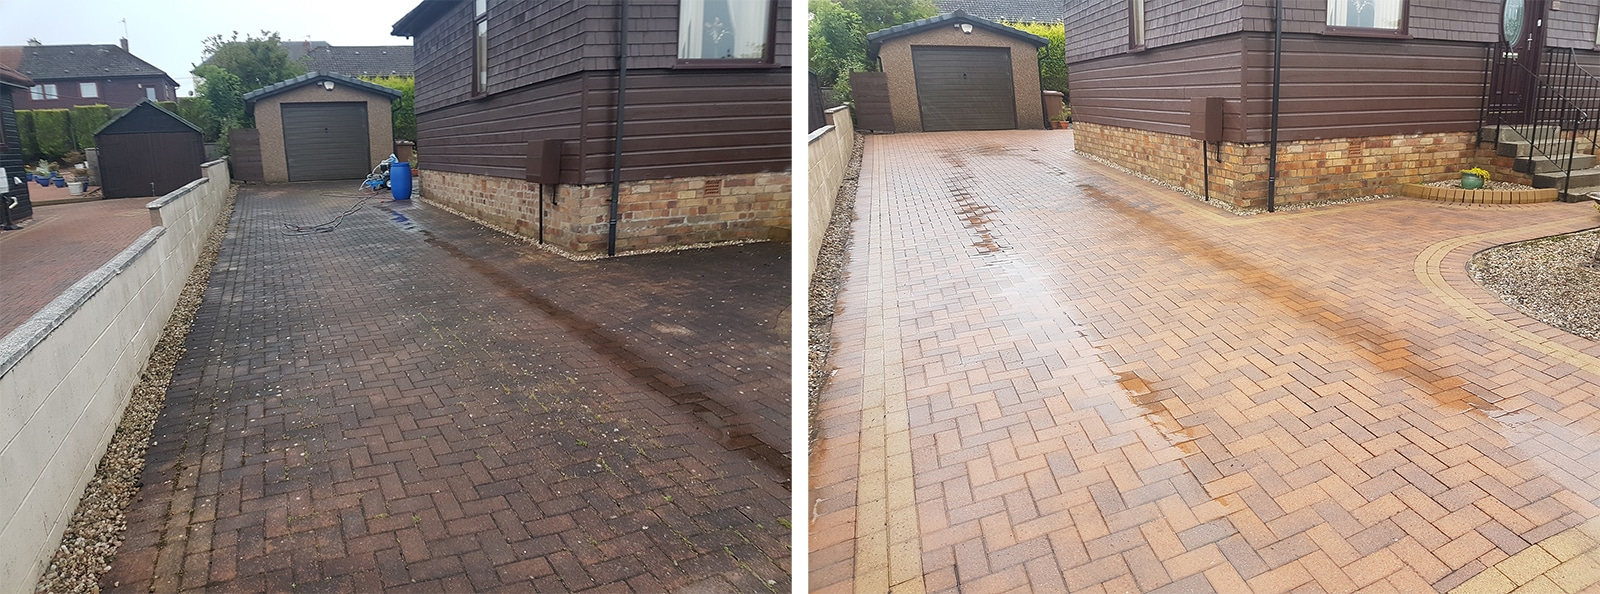 Driveway Cleaning Transformation